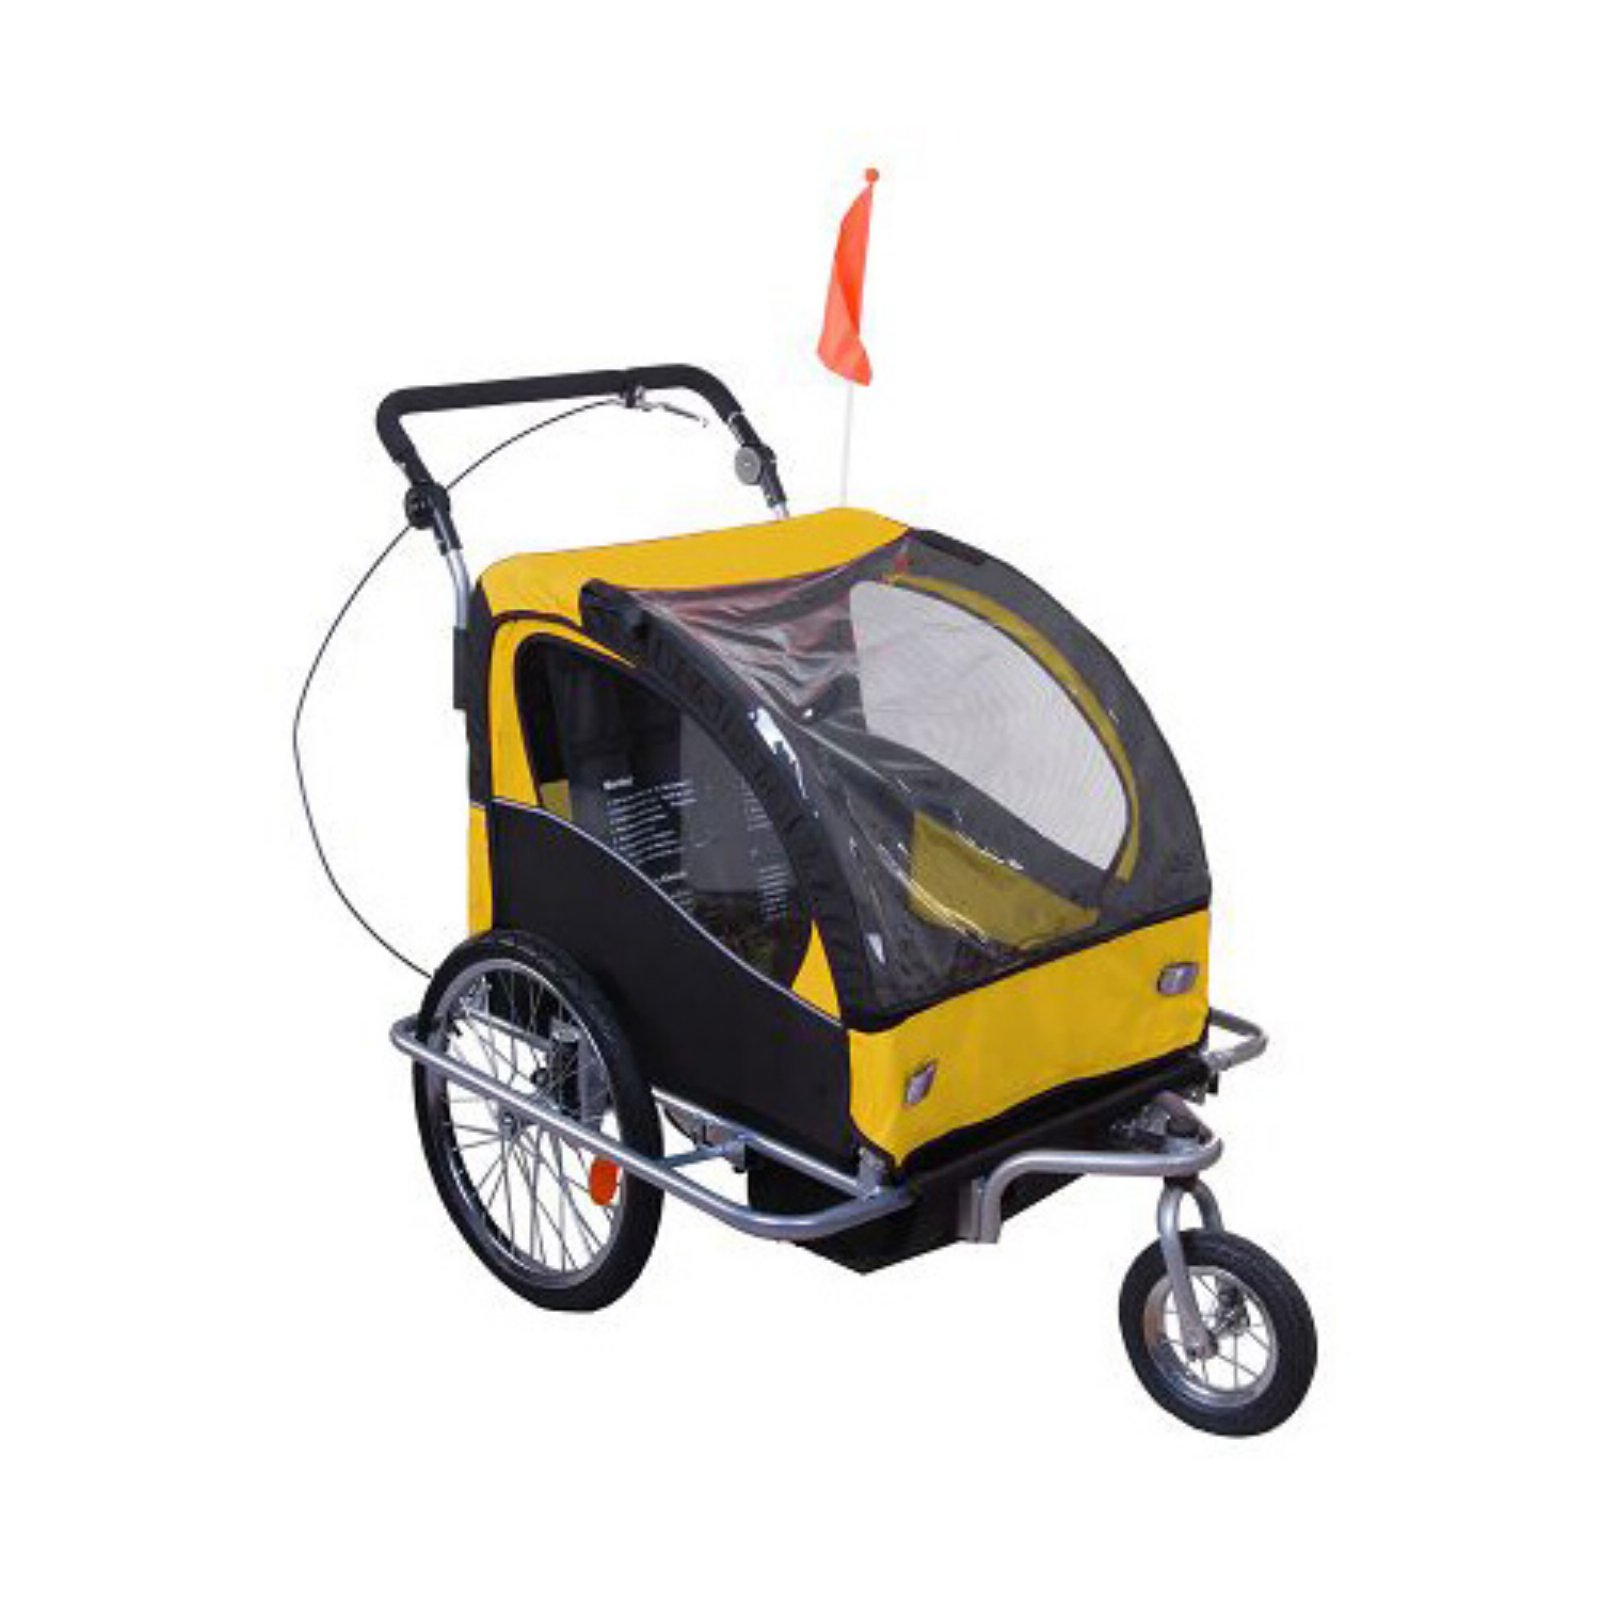 Aosom Elite II 3-In-1 Double Child Bike Trailer and Stroller -Yellow/Black